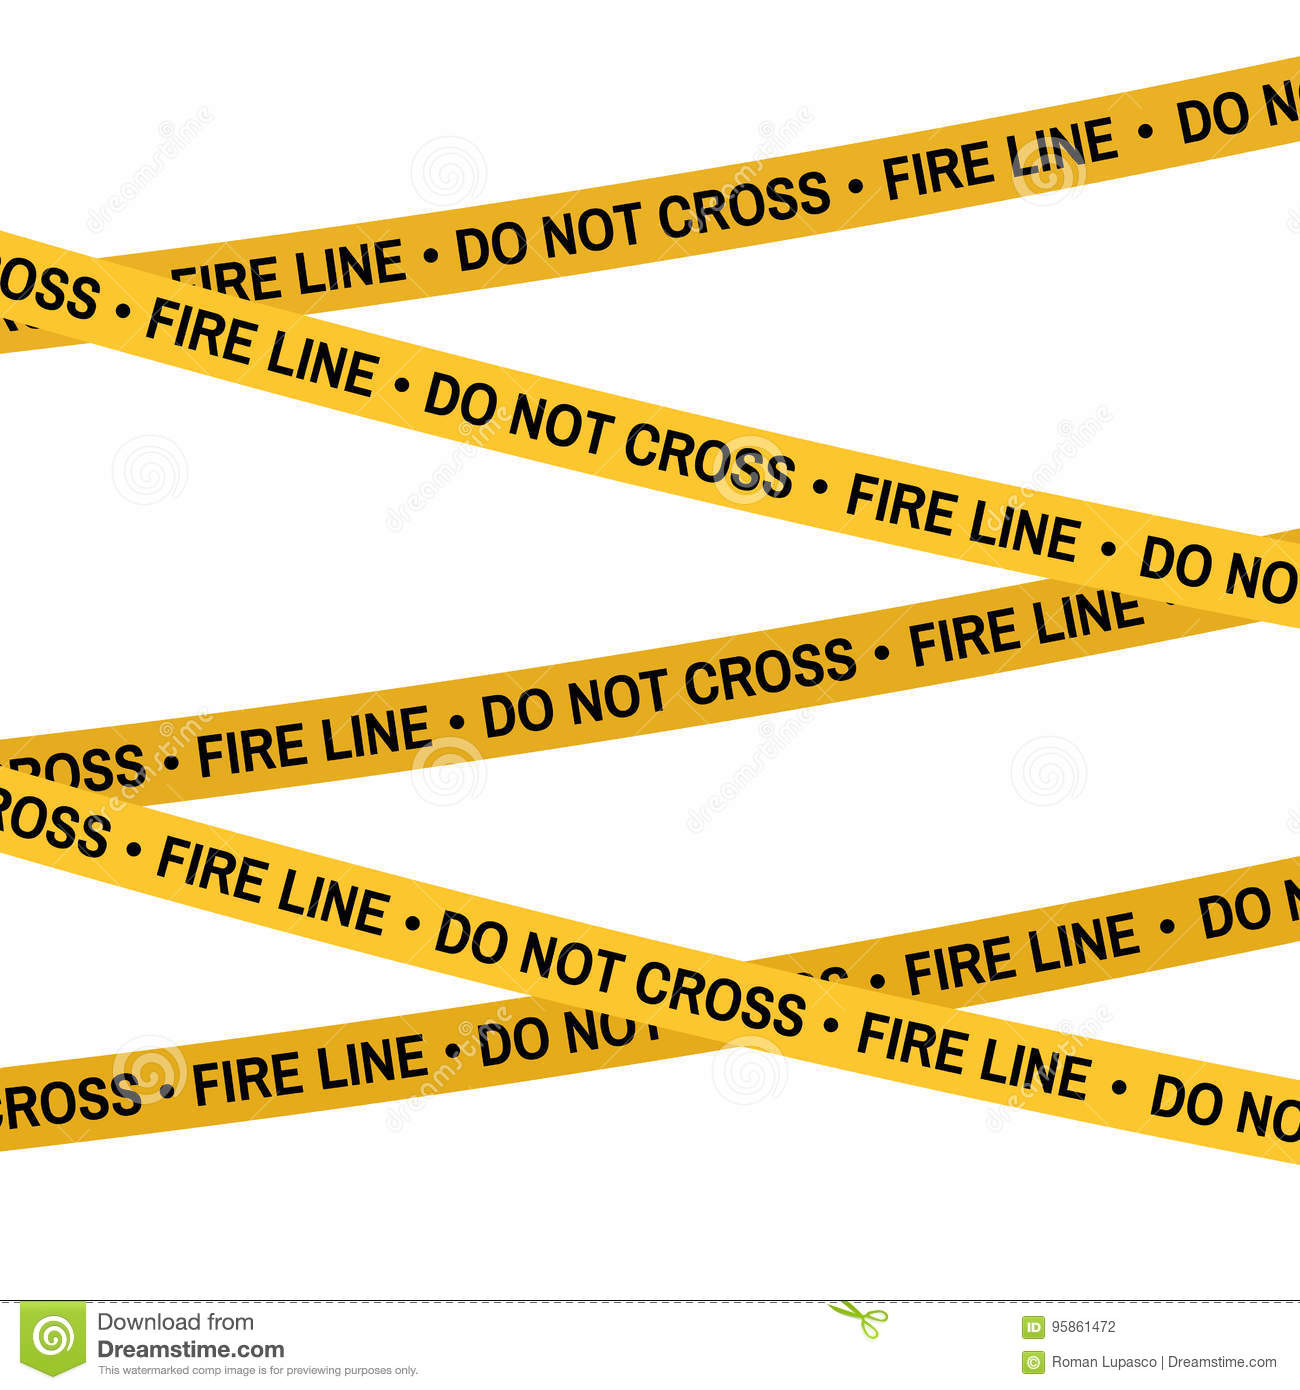 Crime Scene Fire Line Yellow Tape Police Line Do Not Cross Tape Cartoon Flat Style Illustration White Background Stock Illustration Illustration Of Crime Forensic 95861472